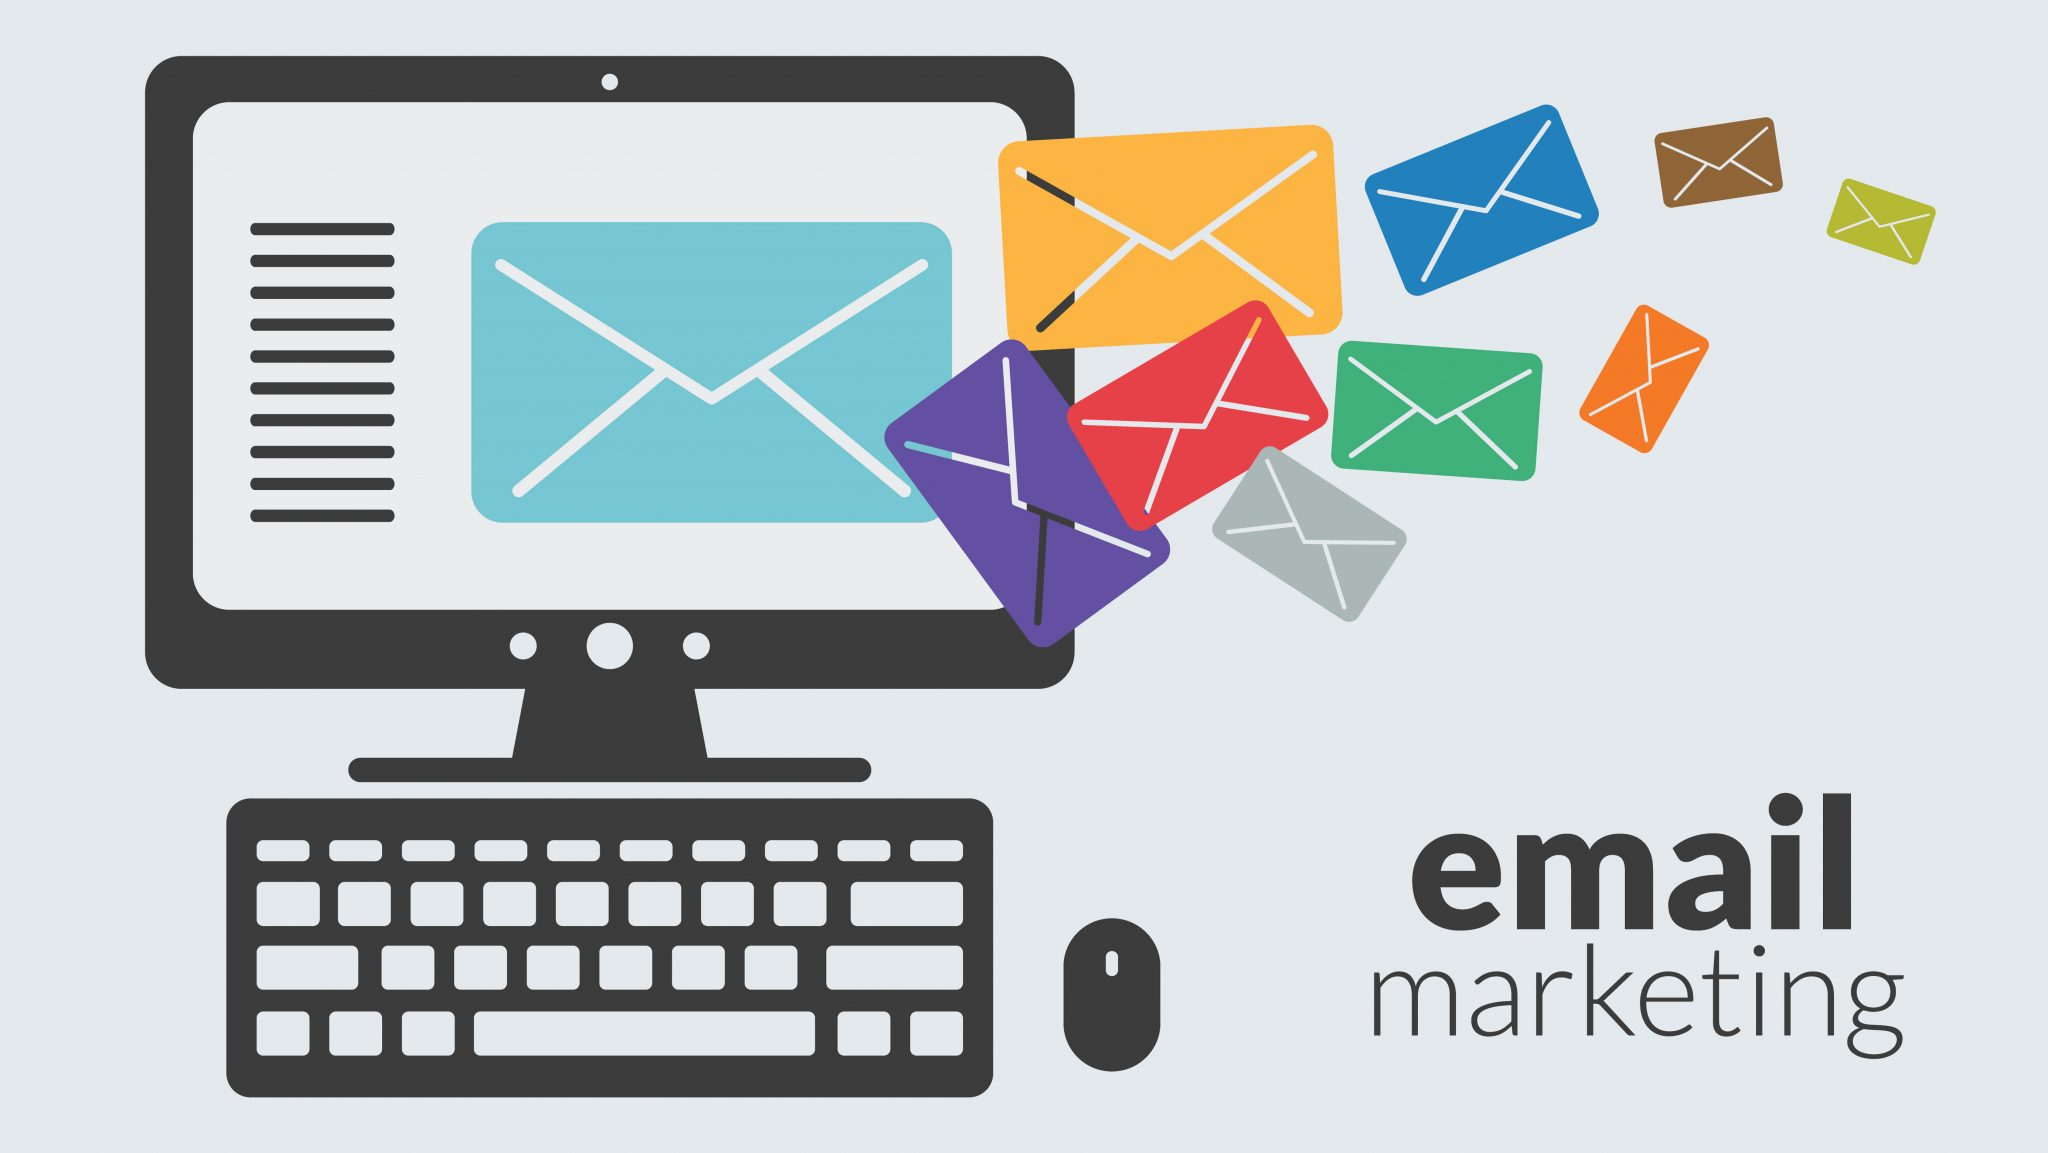 Business computer with email marketing for online advertising